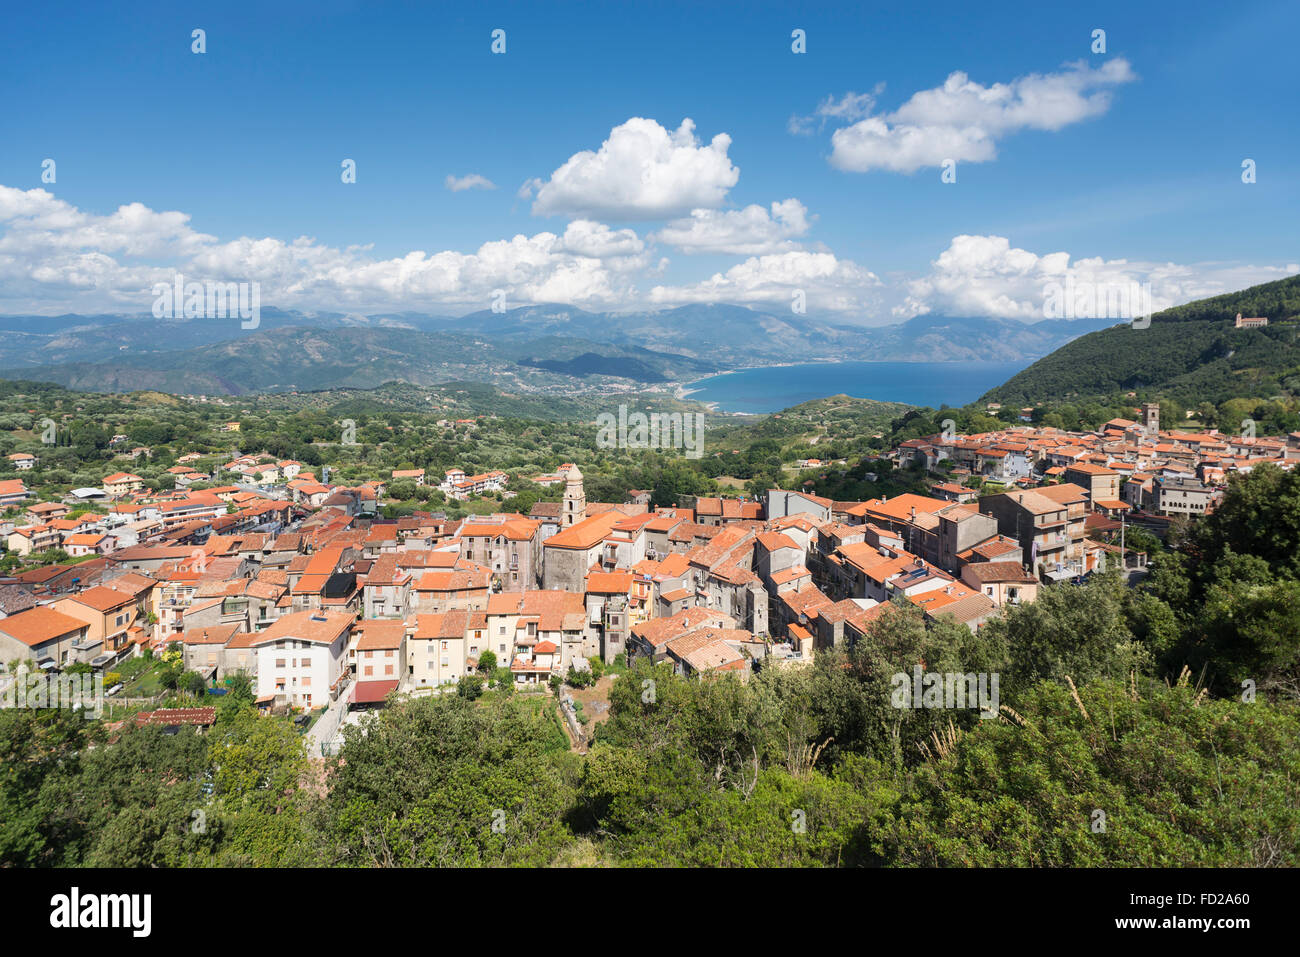 Village San Giovanni a Piro with panorama view to mountains and Gulf of Policastro at the coast of Cilento in southern - Stock Image